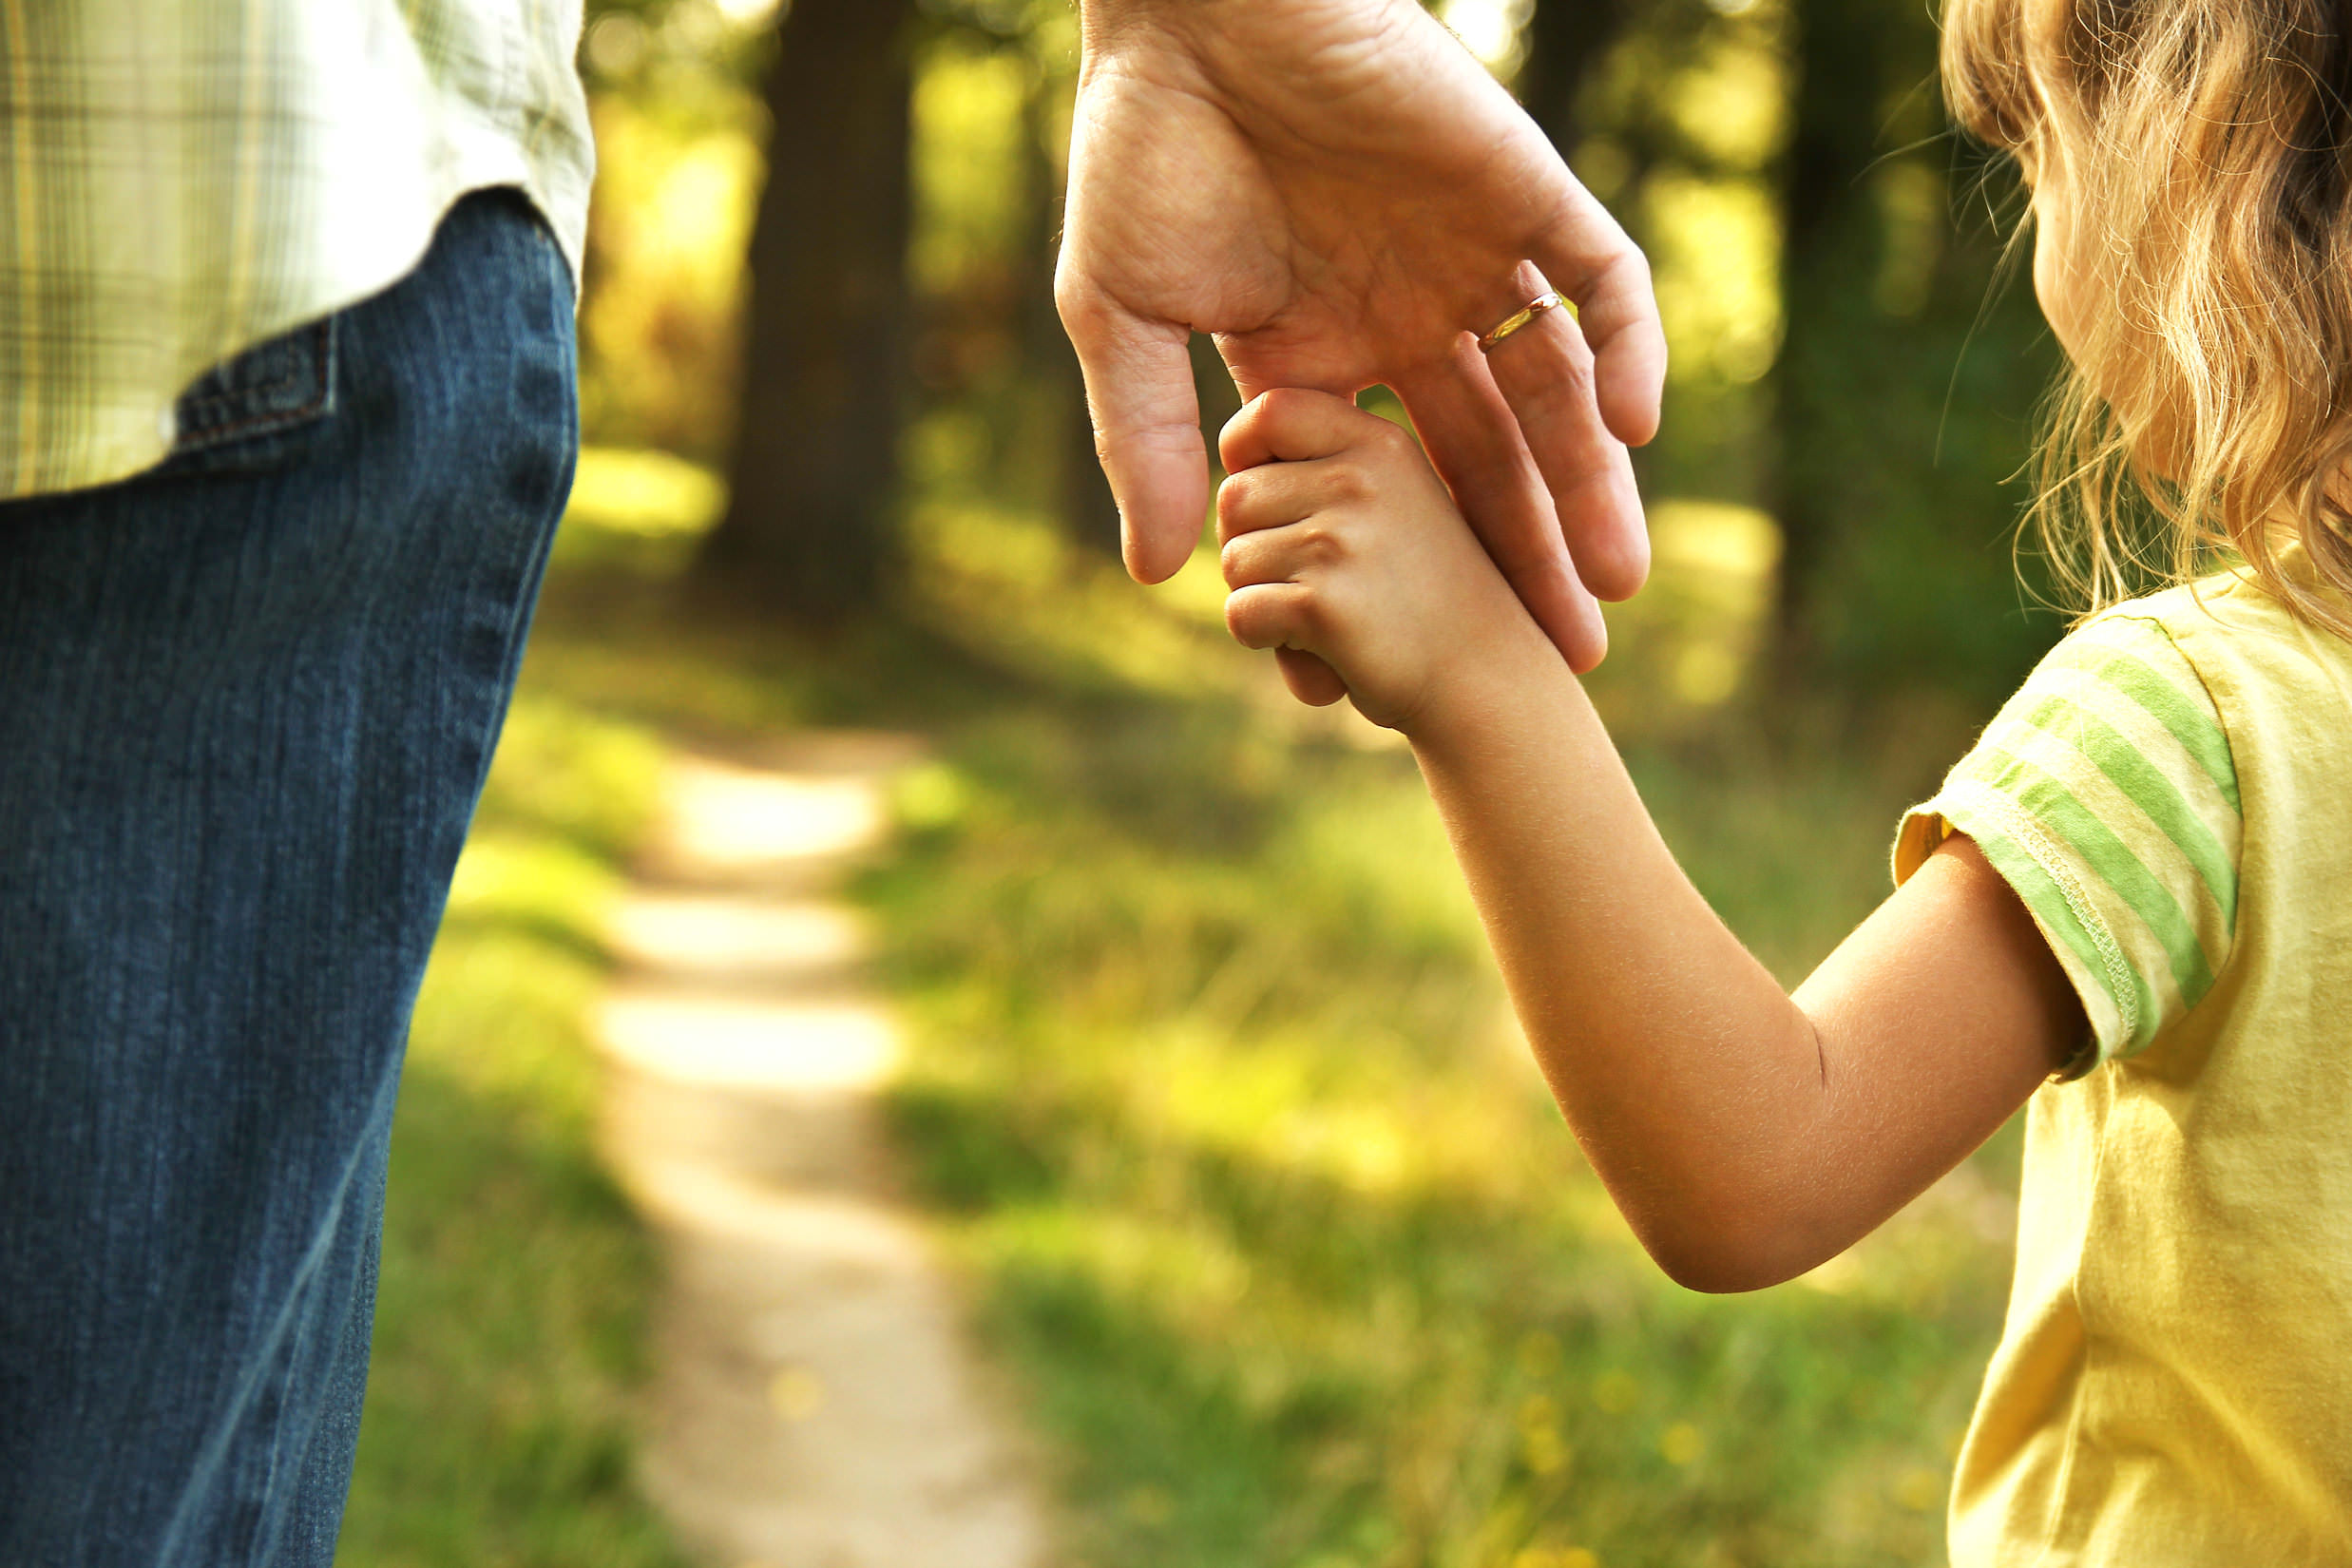 How to lose parental authority in the eyes of your own child